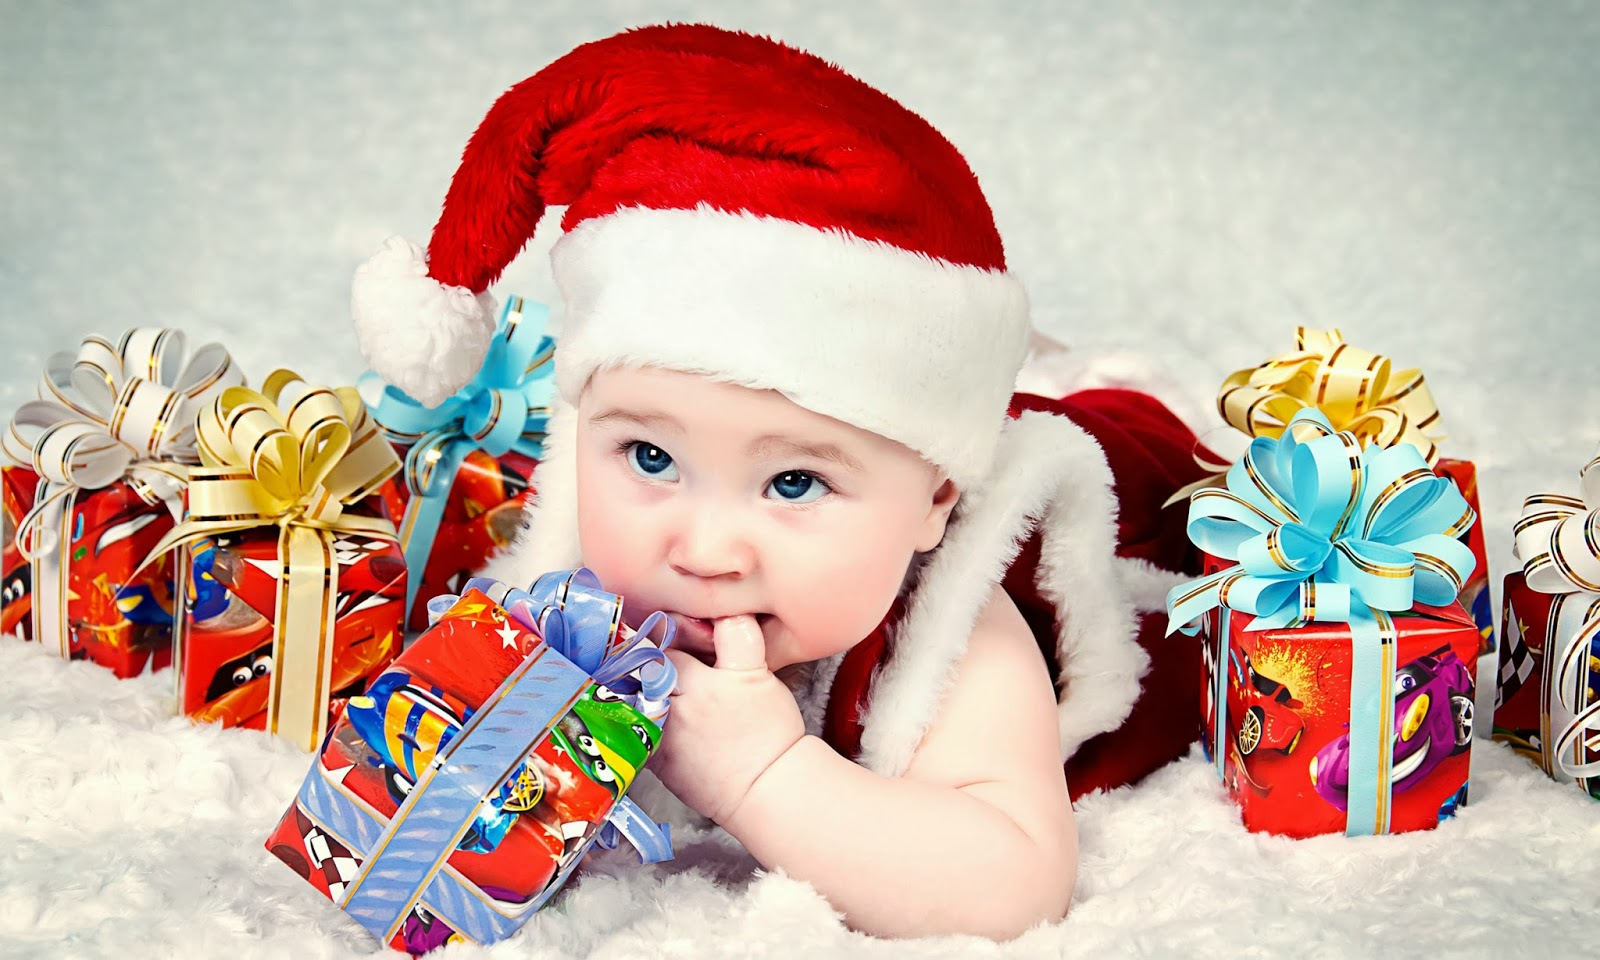 Christmas Babies Full HD Wallpapers 1080p Free Download At Hdwalle Cute